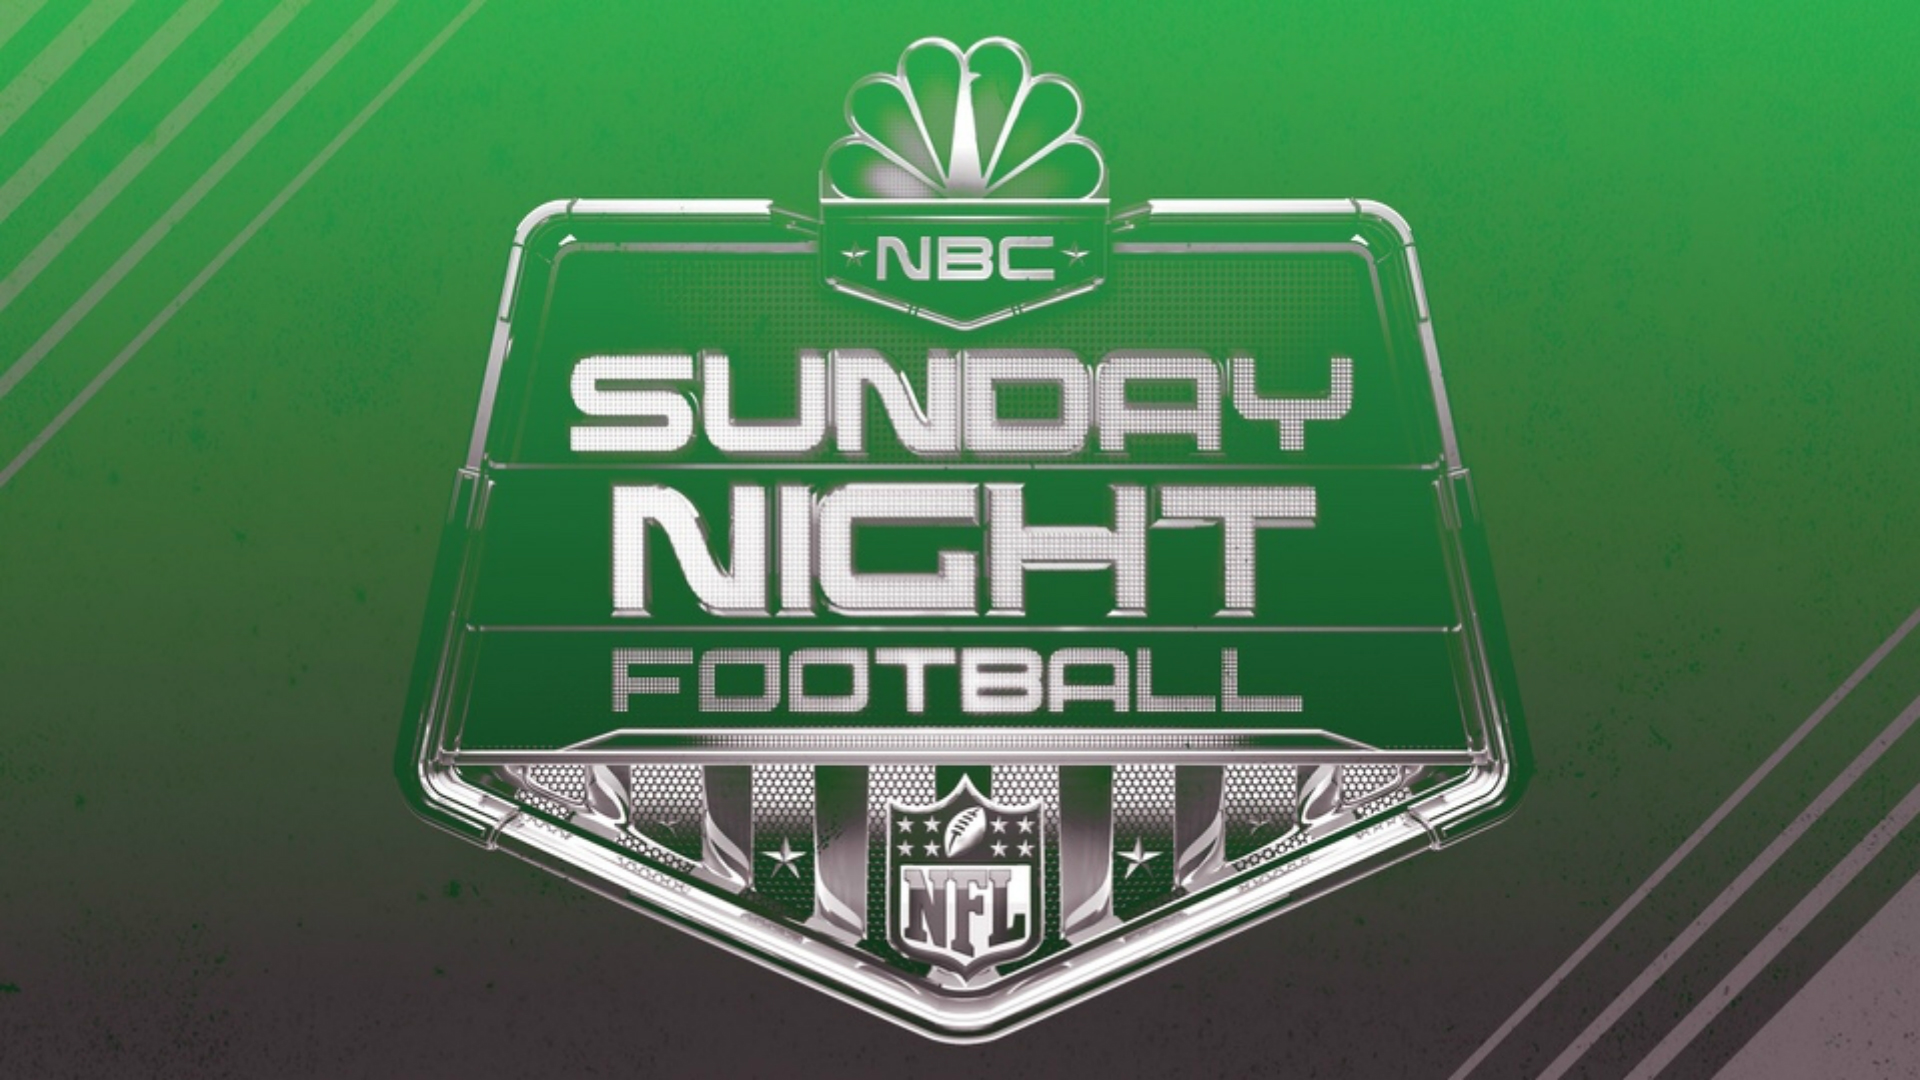 Nfl Schedule 2019 Monday Sunday Thursday Night Games Prime Time